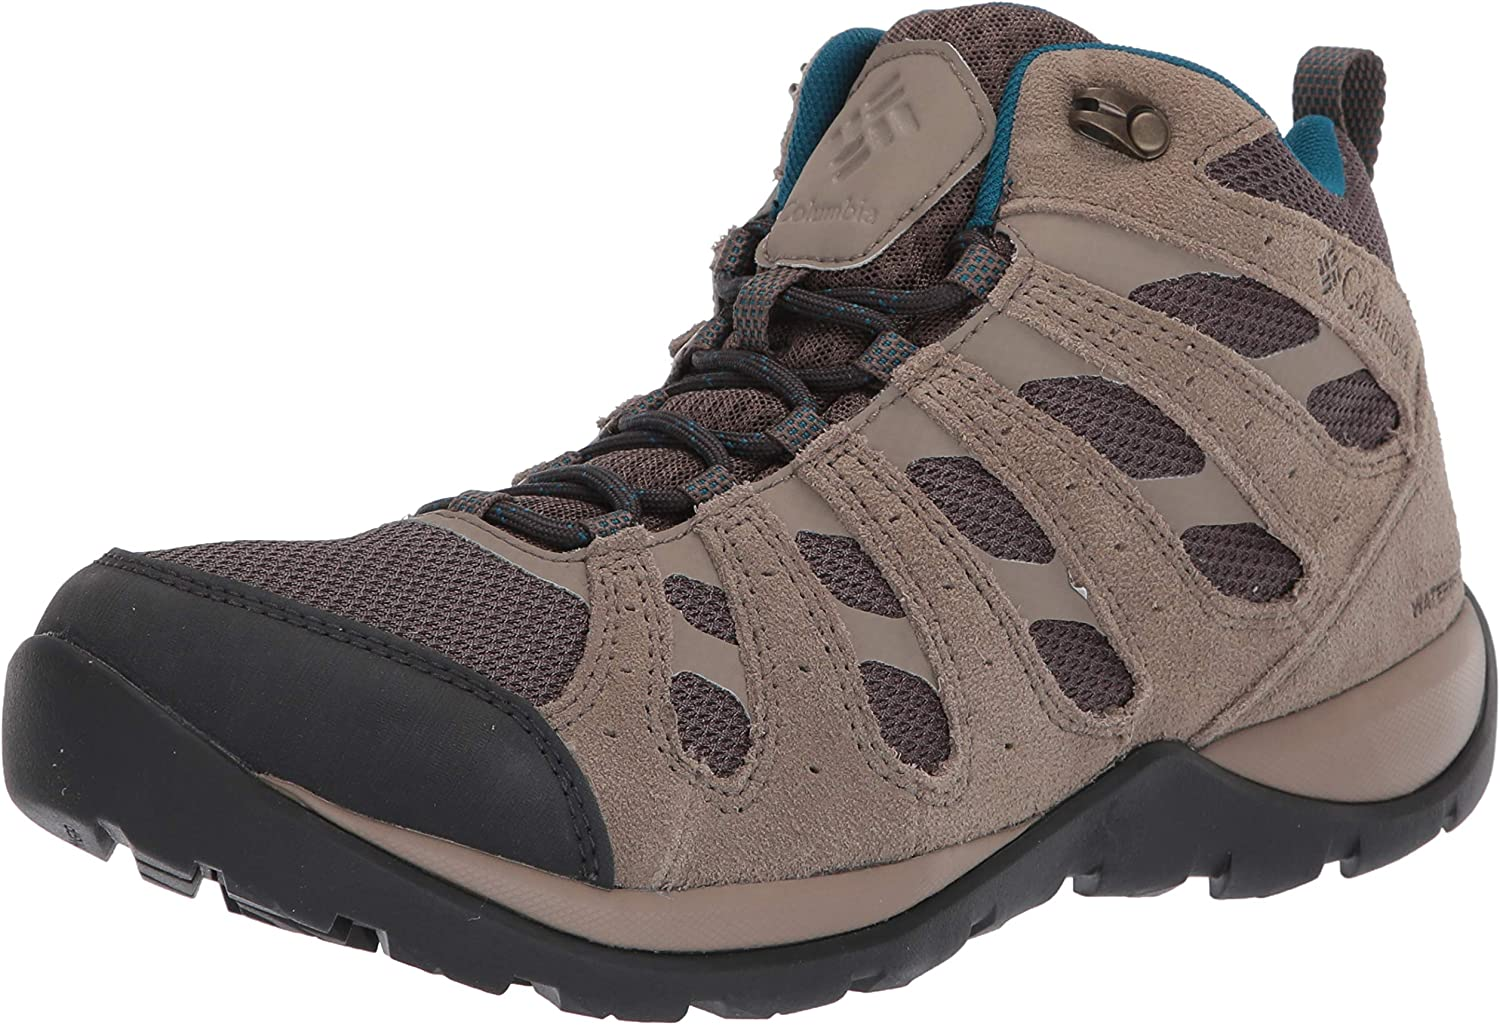 Breathable Leather Hiking Columbia Women/'s Redmond V2 Waterproof Mid Boot